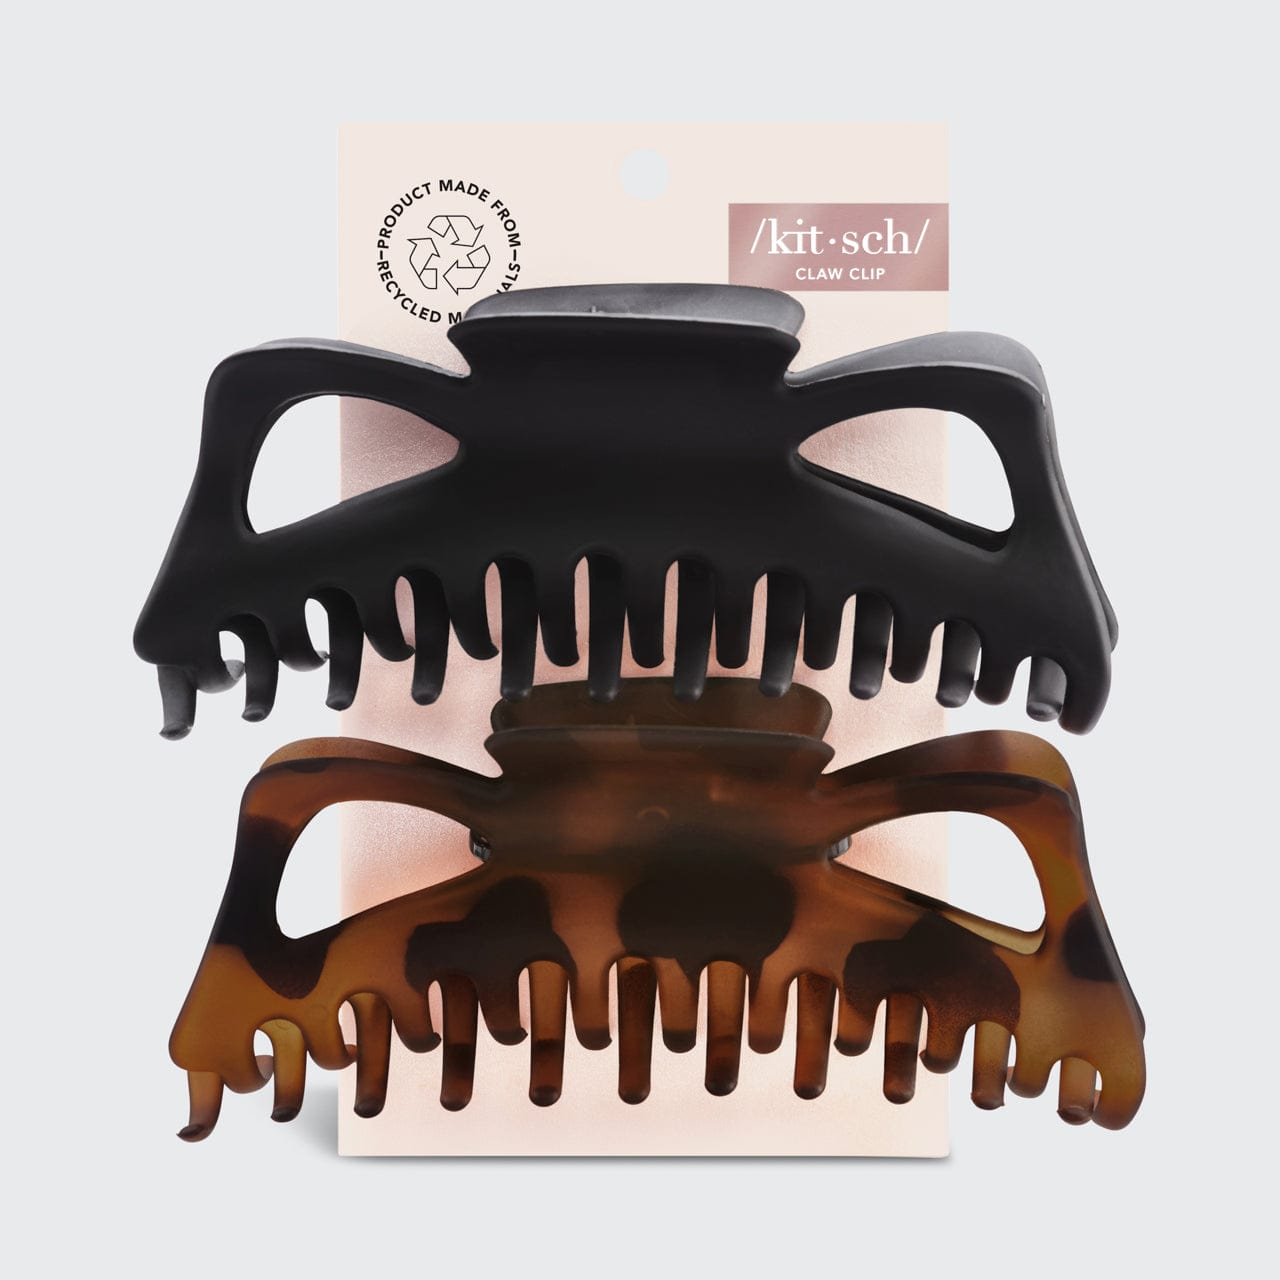 Jumbo Classic Claw Clips 2pc - Recycled Plastic Hair Accessories Hair Accessories